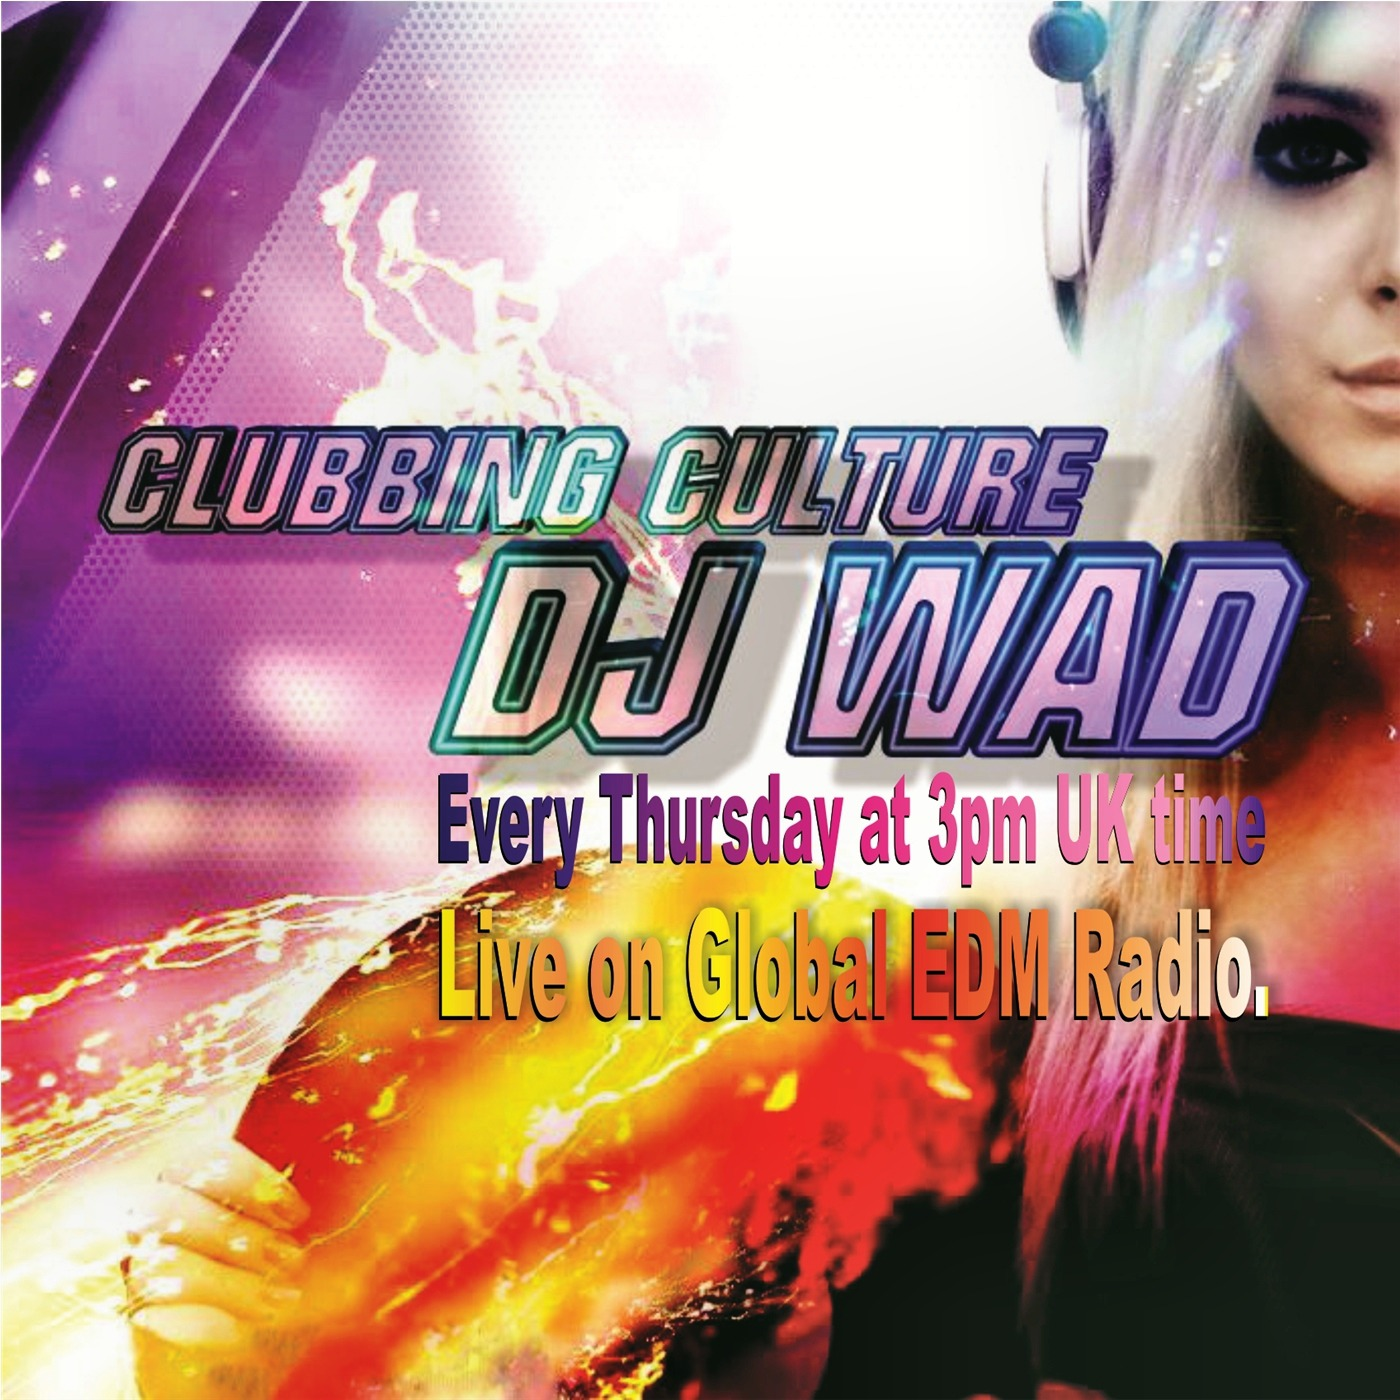 DJ Wad - Clubbing Culture (Official Podcast)